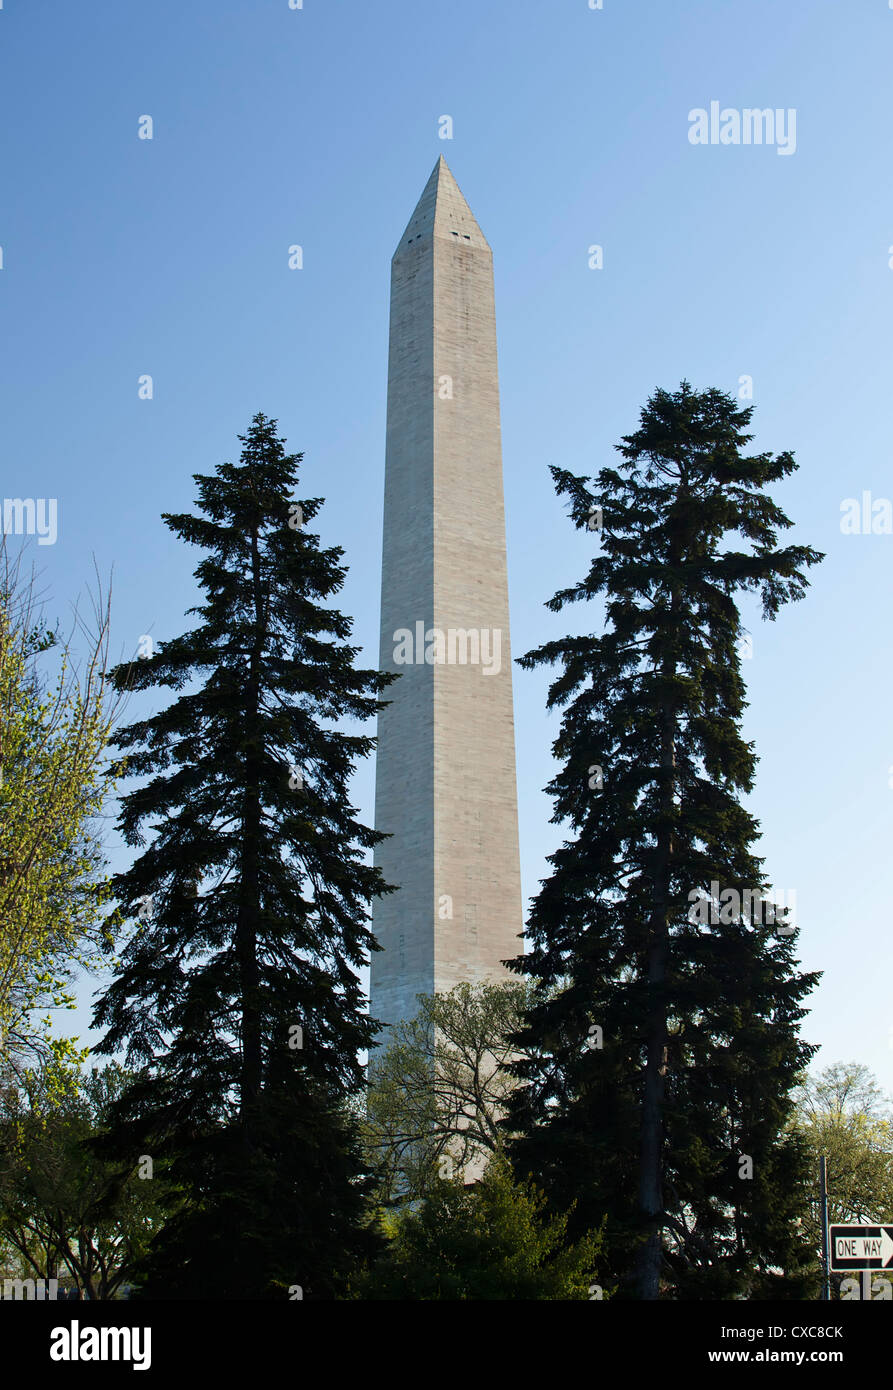 Le Washington Monument, Washington D.C., Etats-Unis d'Amérique, Amérique du Nord Photo Stock